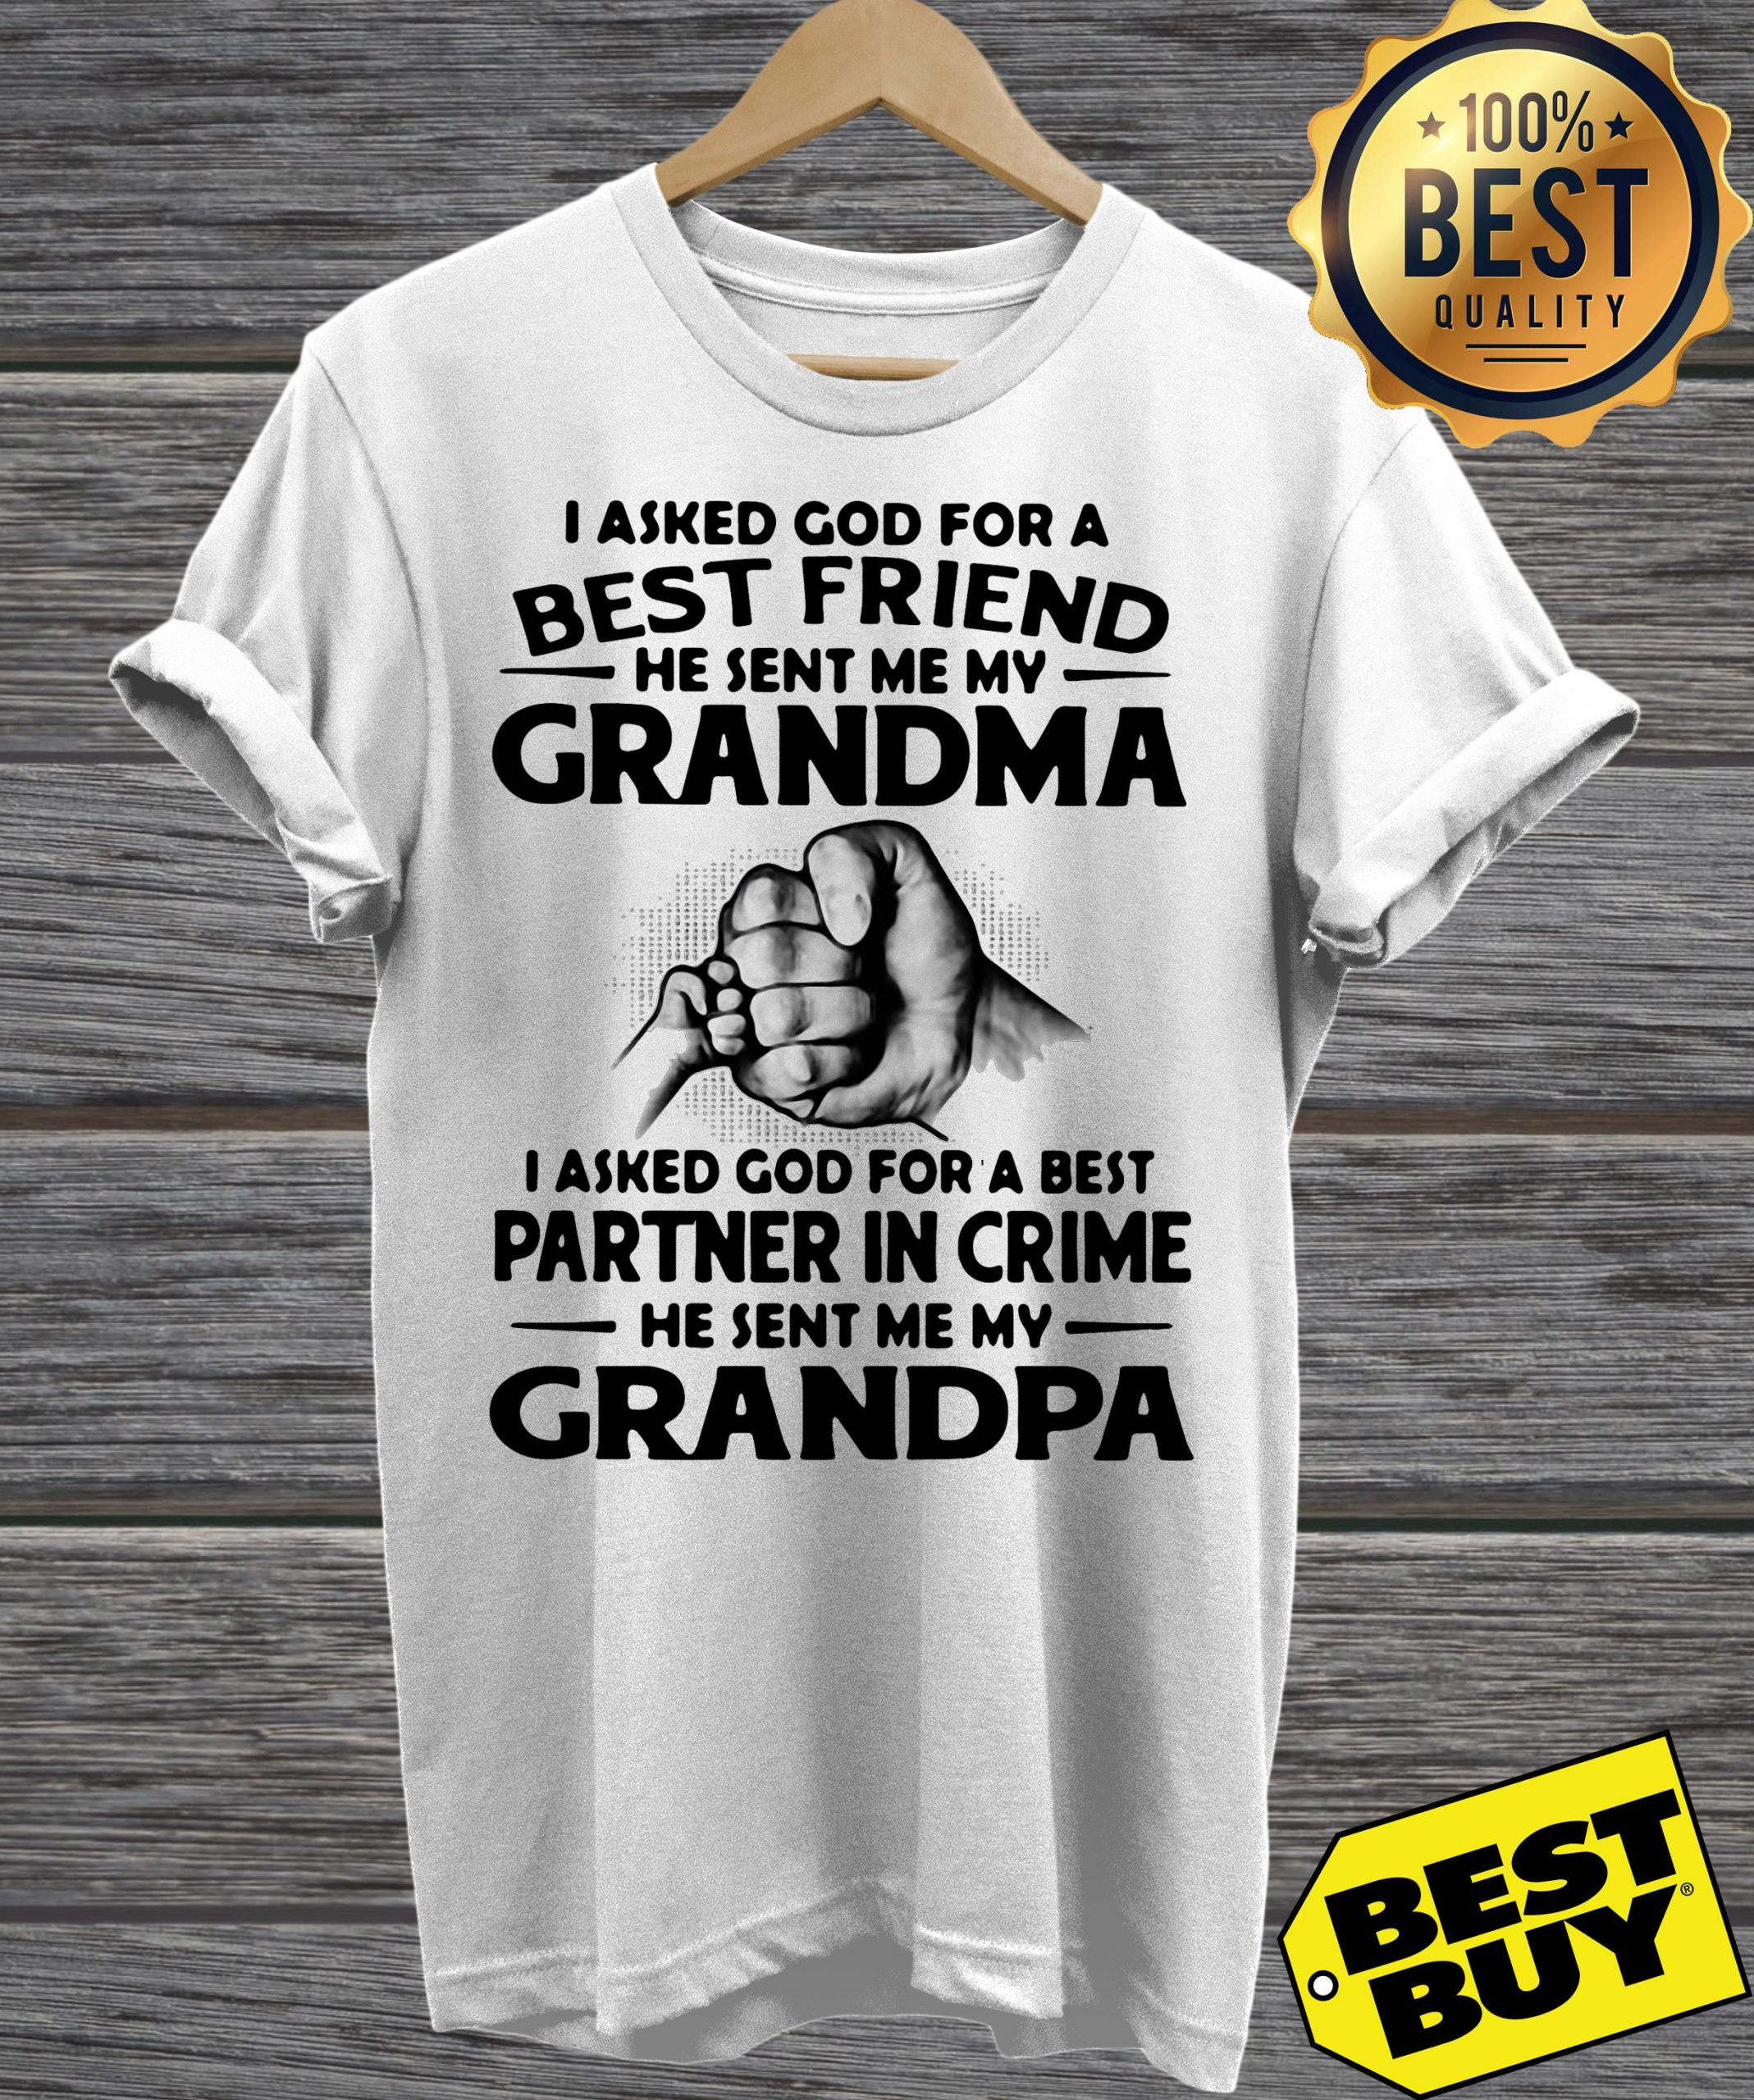 I Asked God For A Best Friend He Sent Me My Grandma I Asked God For A Best Partner In Crime He Sent Me My Grandpa v-neck